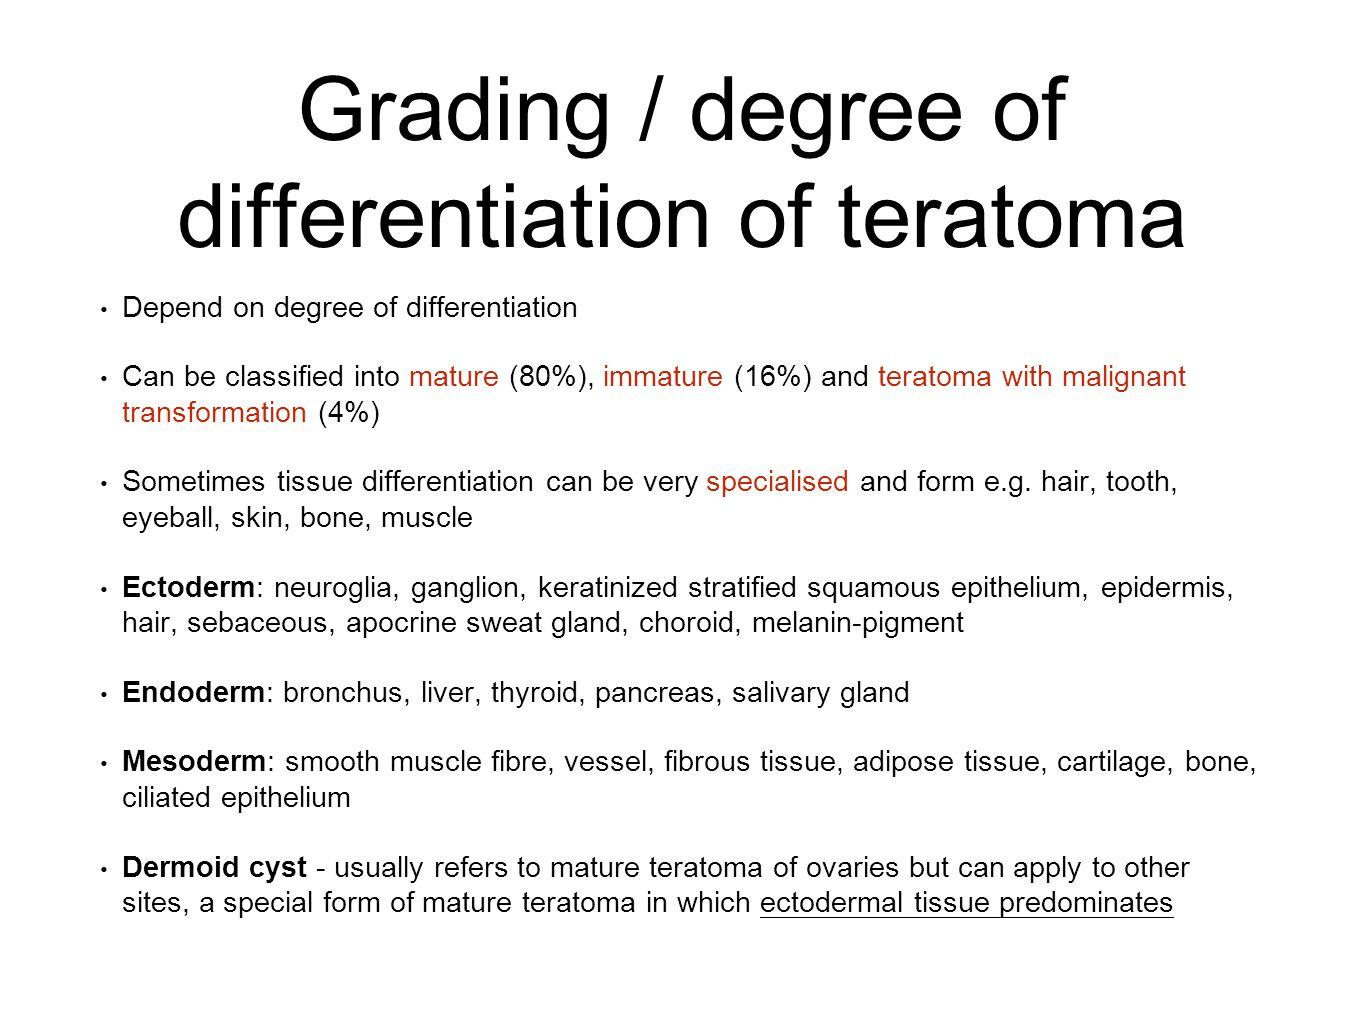 Grading / degree of differentiation of teratoma Depend on degree of differentiation Can be classified into mature (80%), immature (16%) and teratoma with malignant transformation (4%) Sometimes tissue differentiation can be very specialised and form e.g.